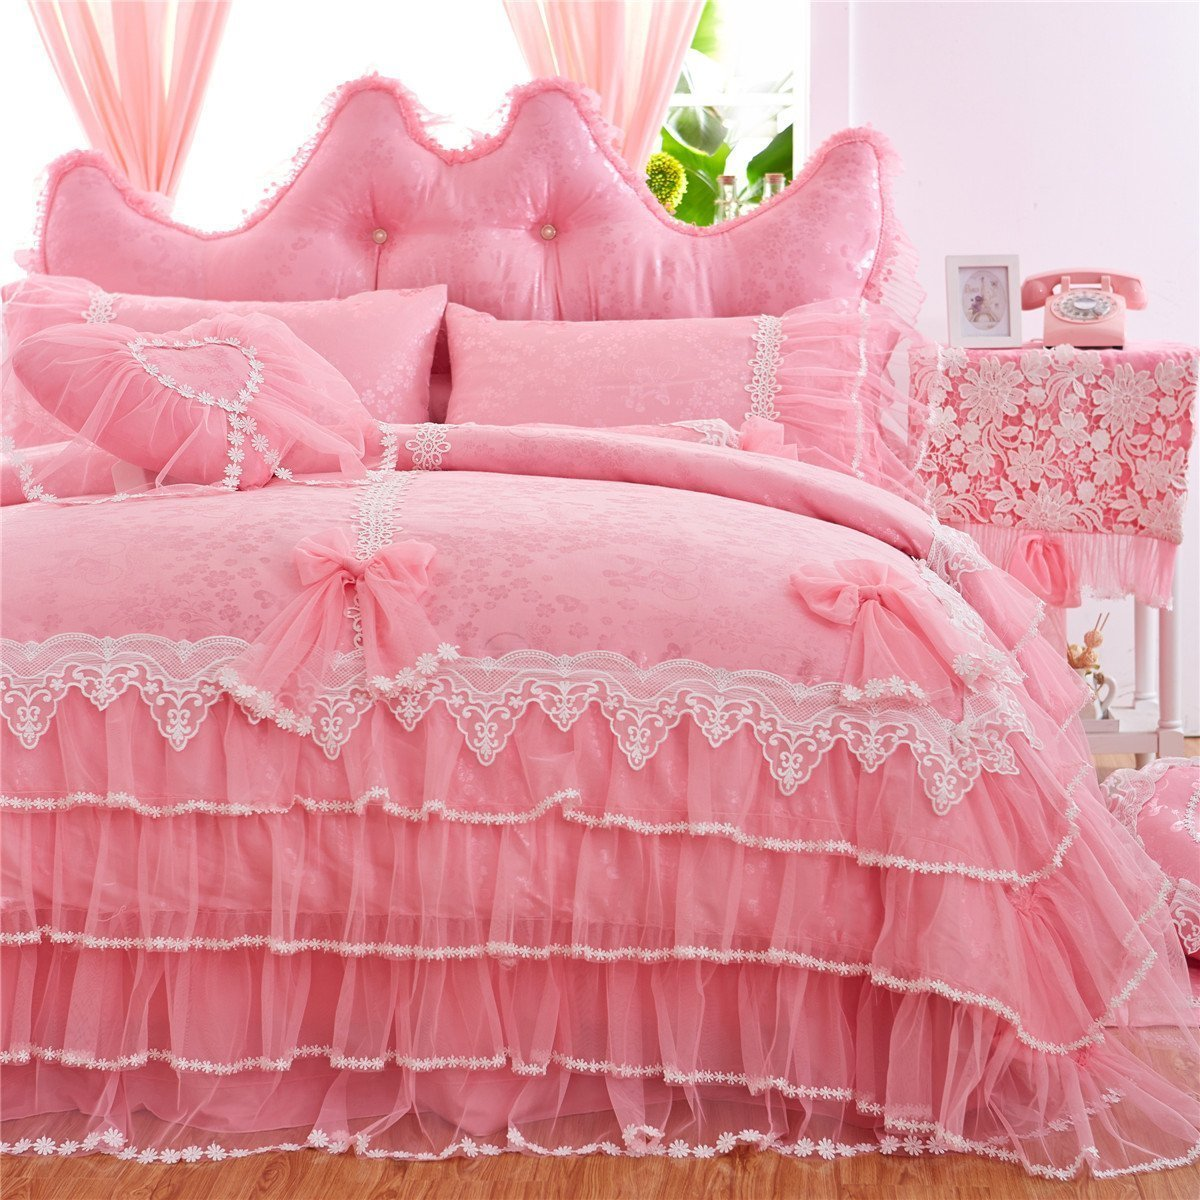 WINLIFE Pink Lace Ruffle Bedding Set Korean Princess Bowknot Duvet Cover Sets Queen 7PCS 4PCS